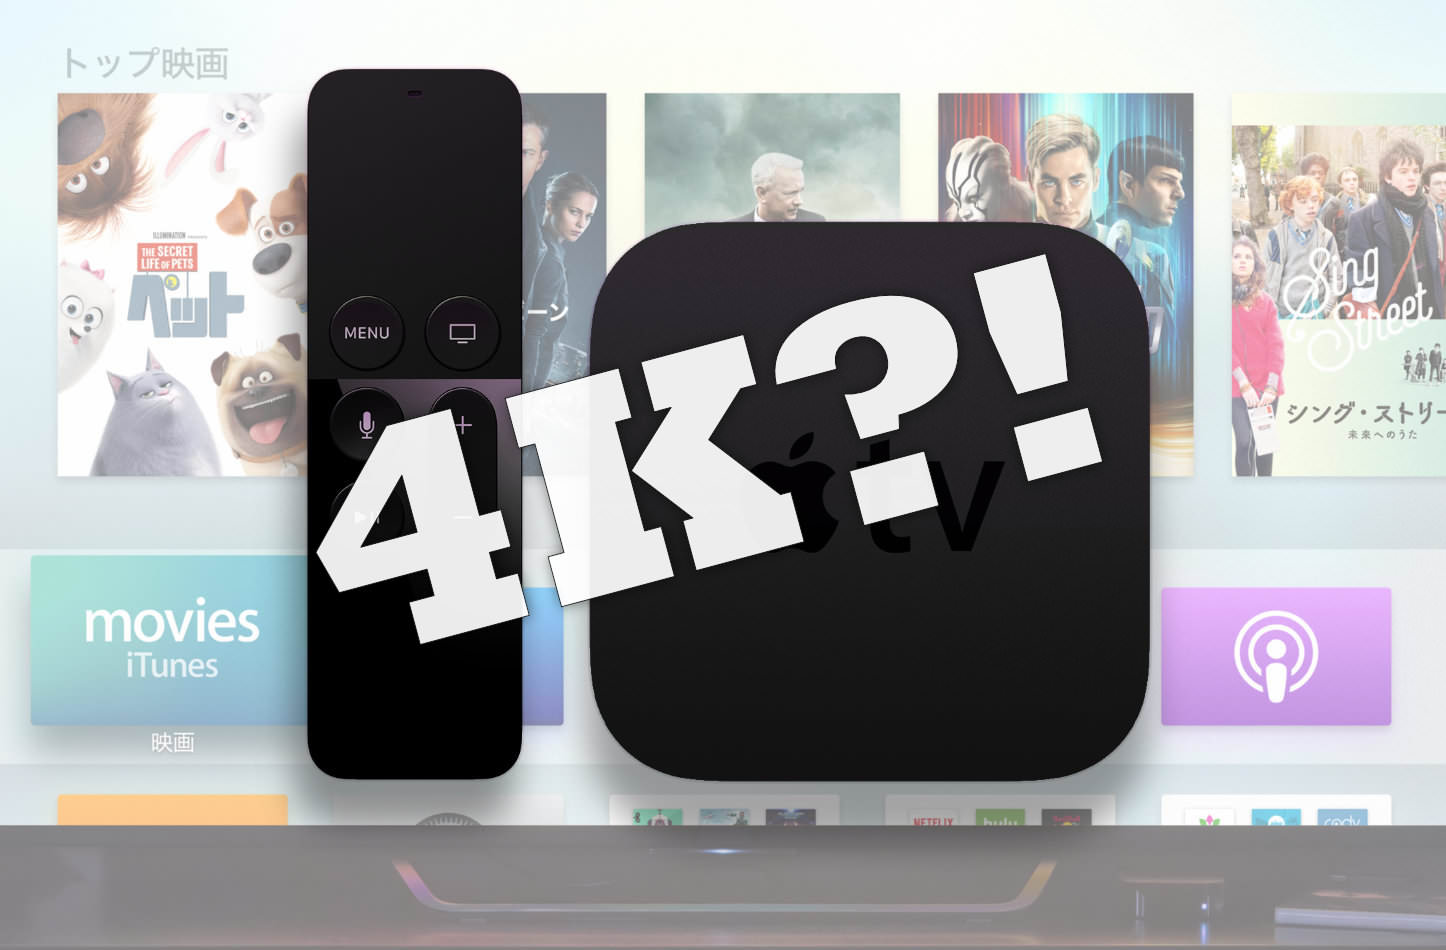 Apple TV Image 4k